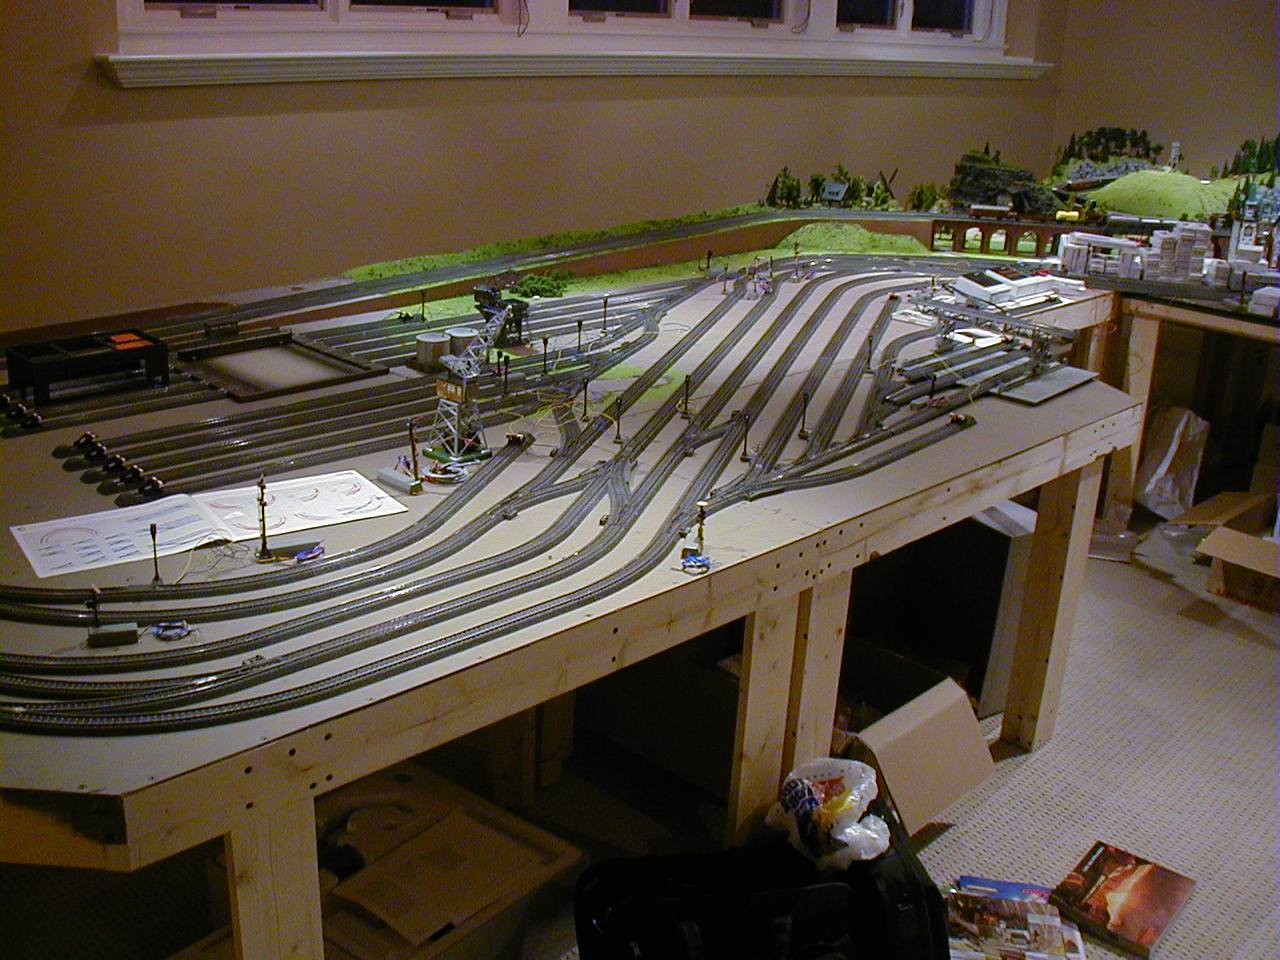 Mini Things For Ho Train Layout Wiring Diagrams Trackwork There Are A Lot Of Different Products On The Market That One Can Use However Only Requirement I Have When Building Is To